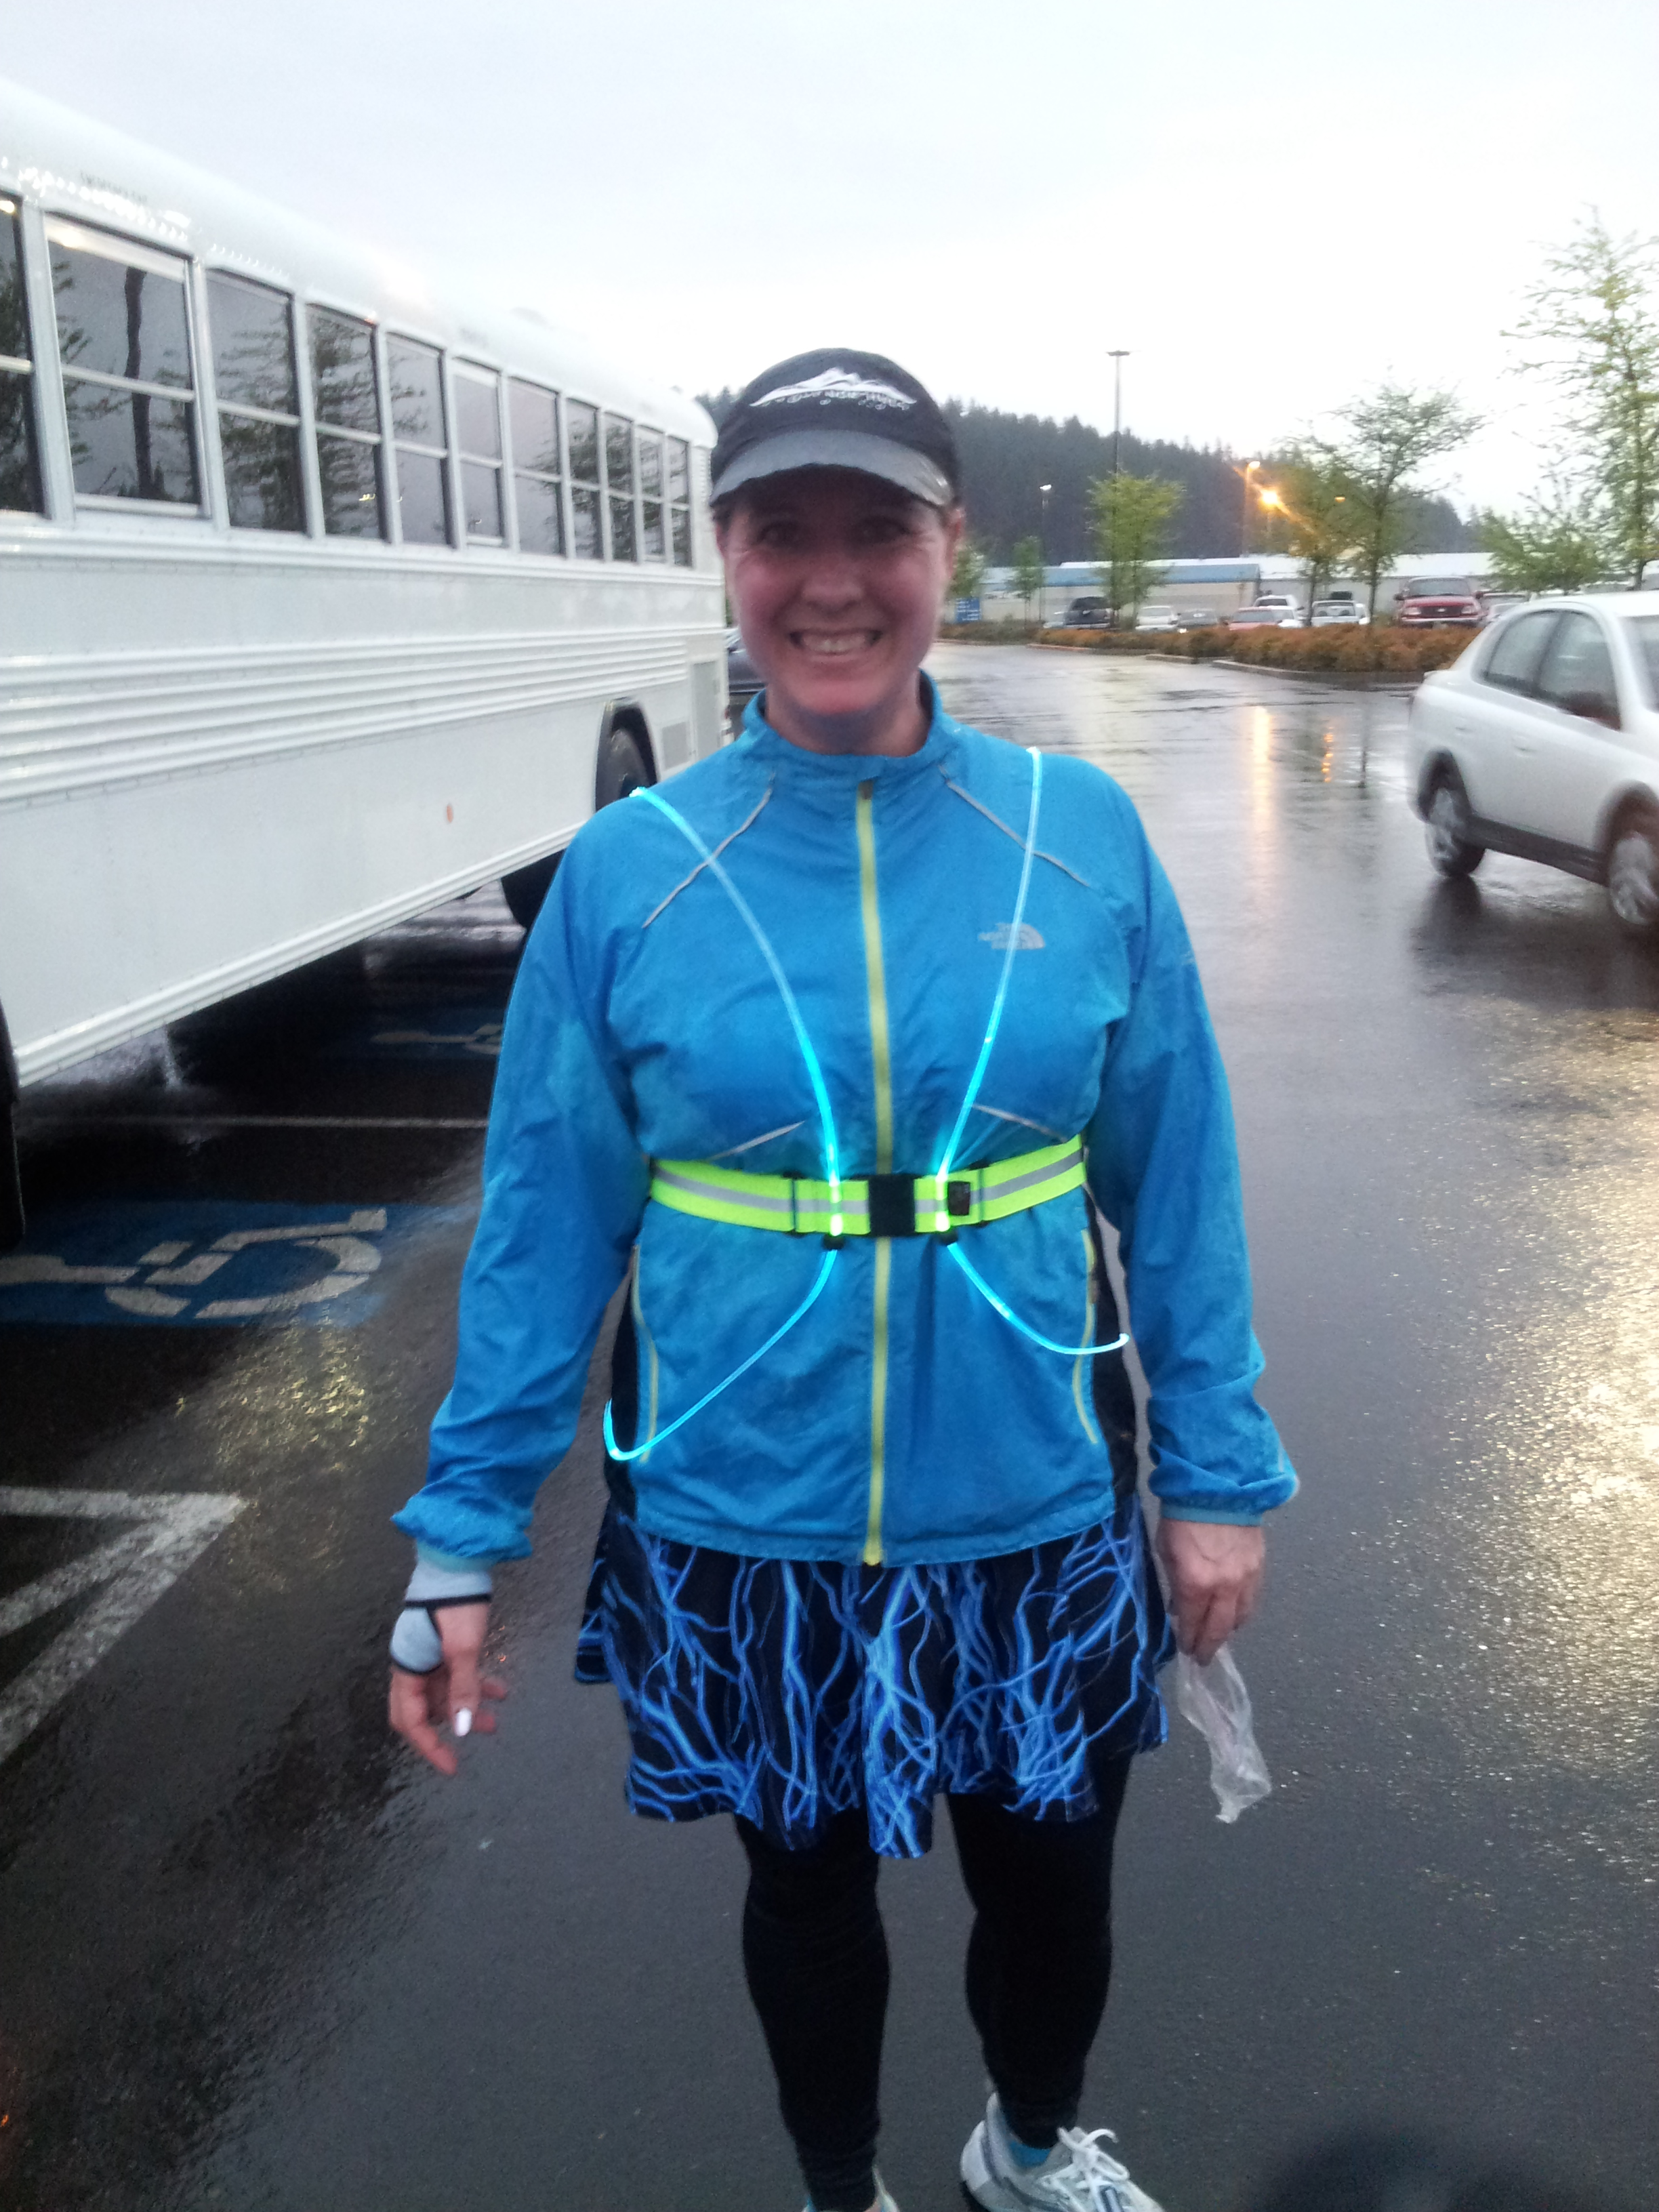 Product Review Noxgear Tracer360 Run Oregon Fueltbelt Neon Vest Tracer 360 In Action On A Wet Morning After The